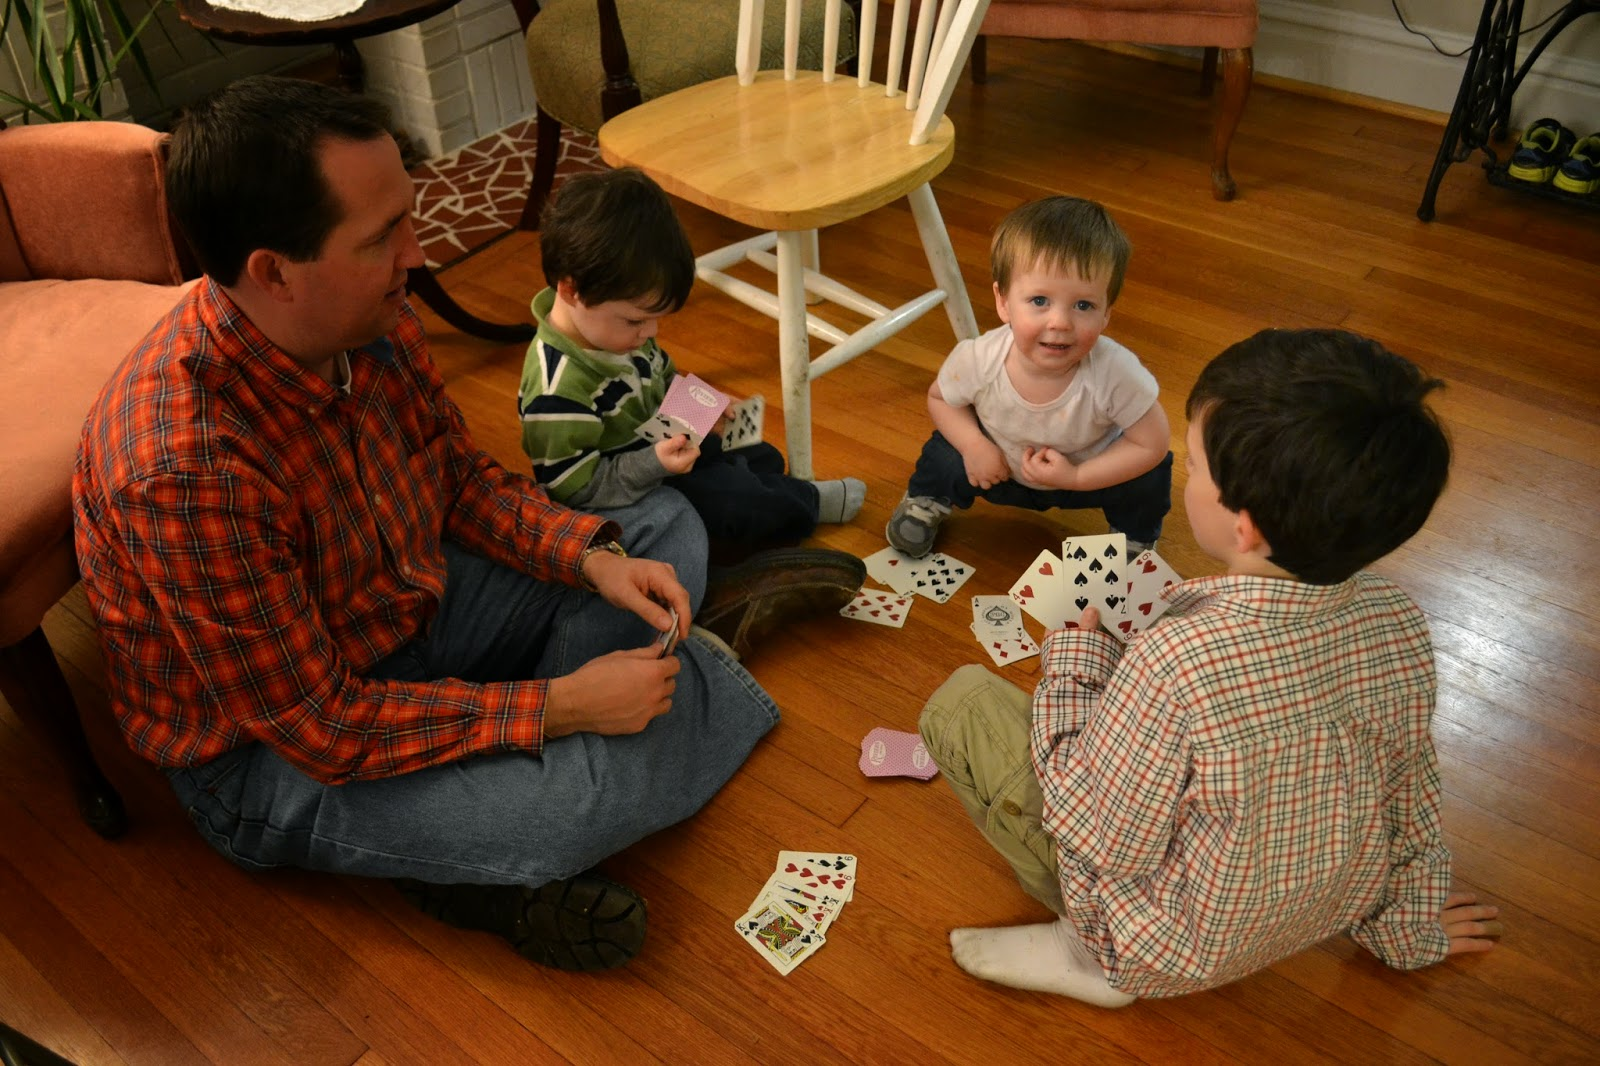 after trivial pursuit max really wanted to play go fish. Black Bedroom Furniture Sets. Home Design Ideas